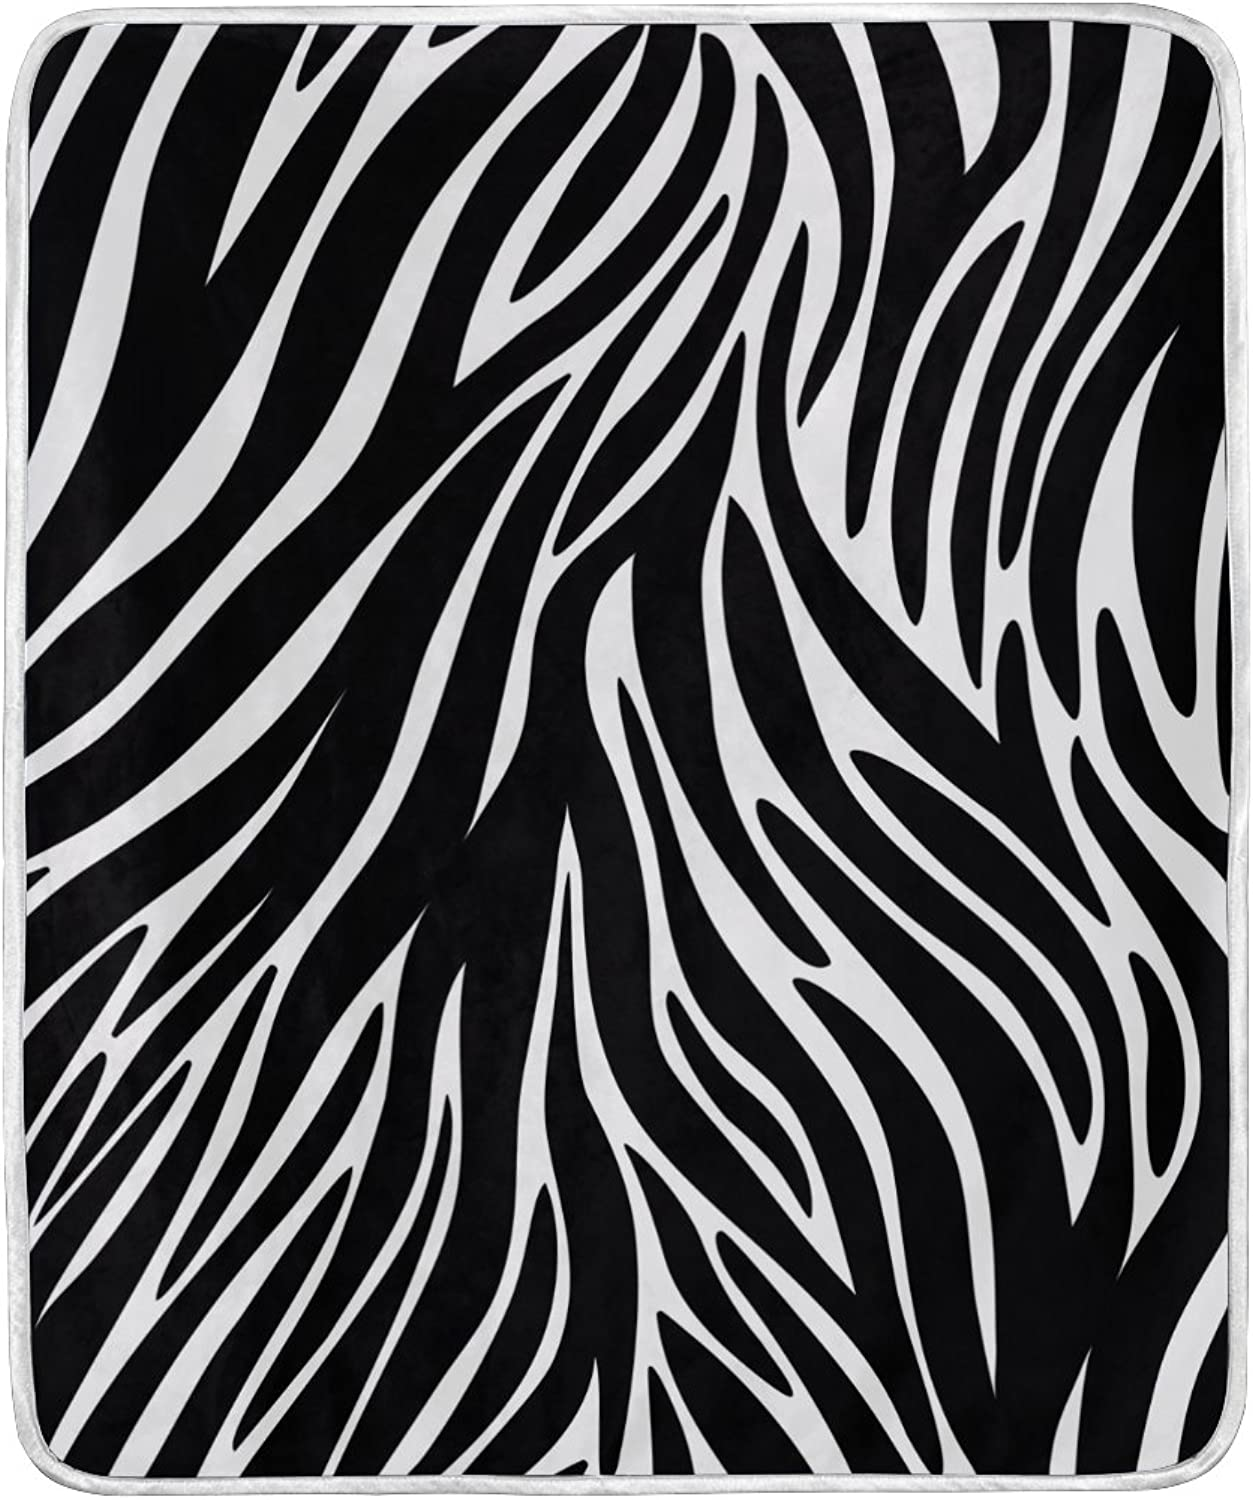 ALIREA Zebra Textures Super Soft Warm Blanket Lightweight Throw Blankets for Bed Couch Sofa Travelling Camping 60 x 50 Inch for Kids Boys Girls